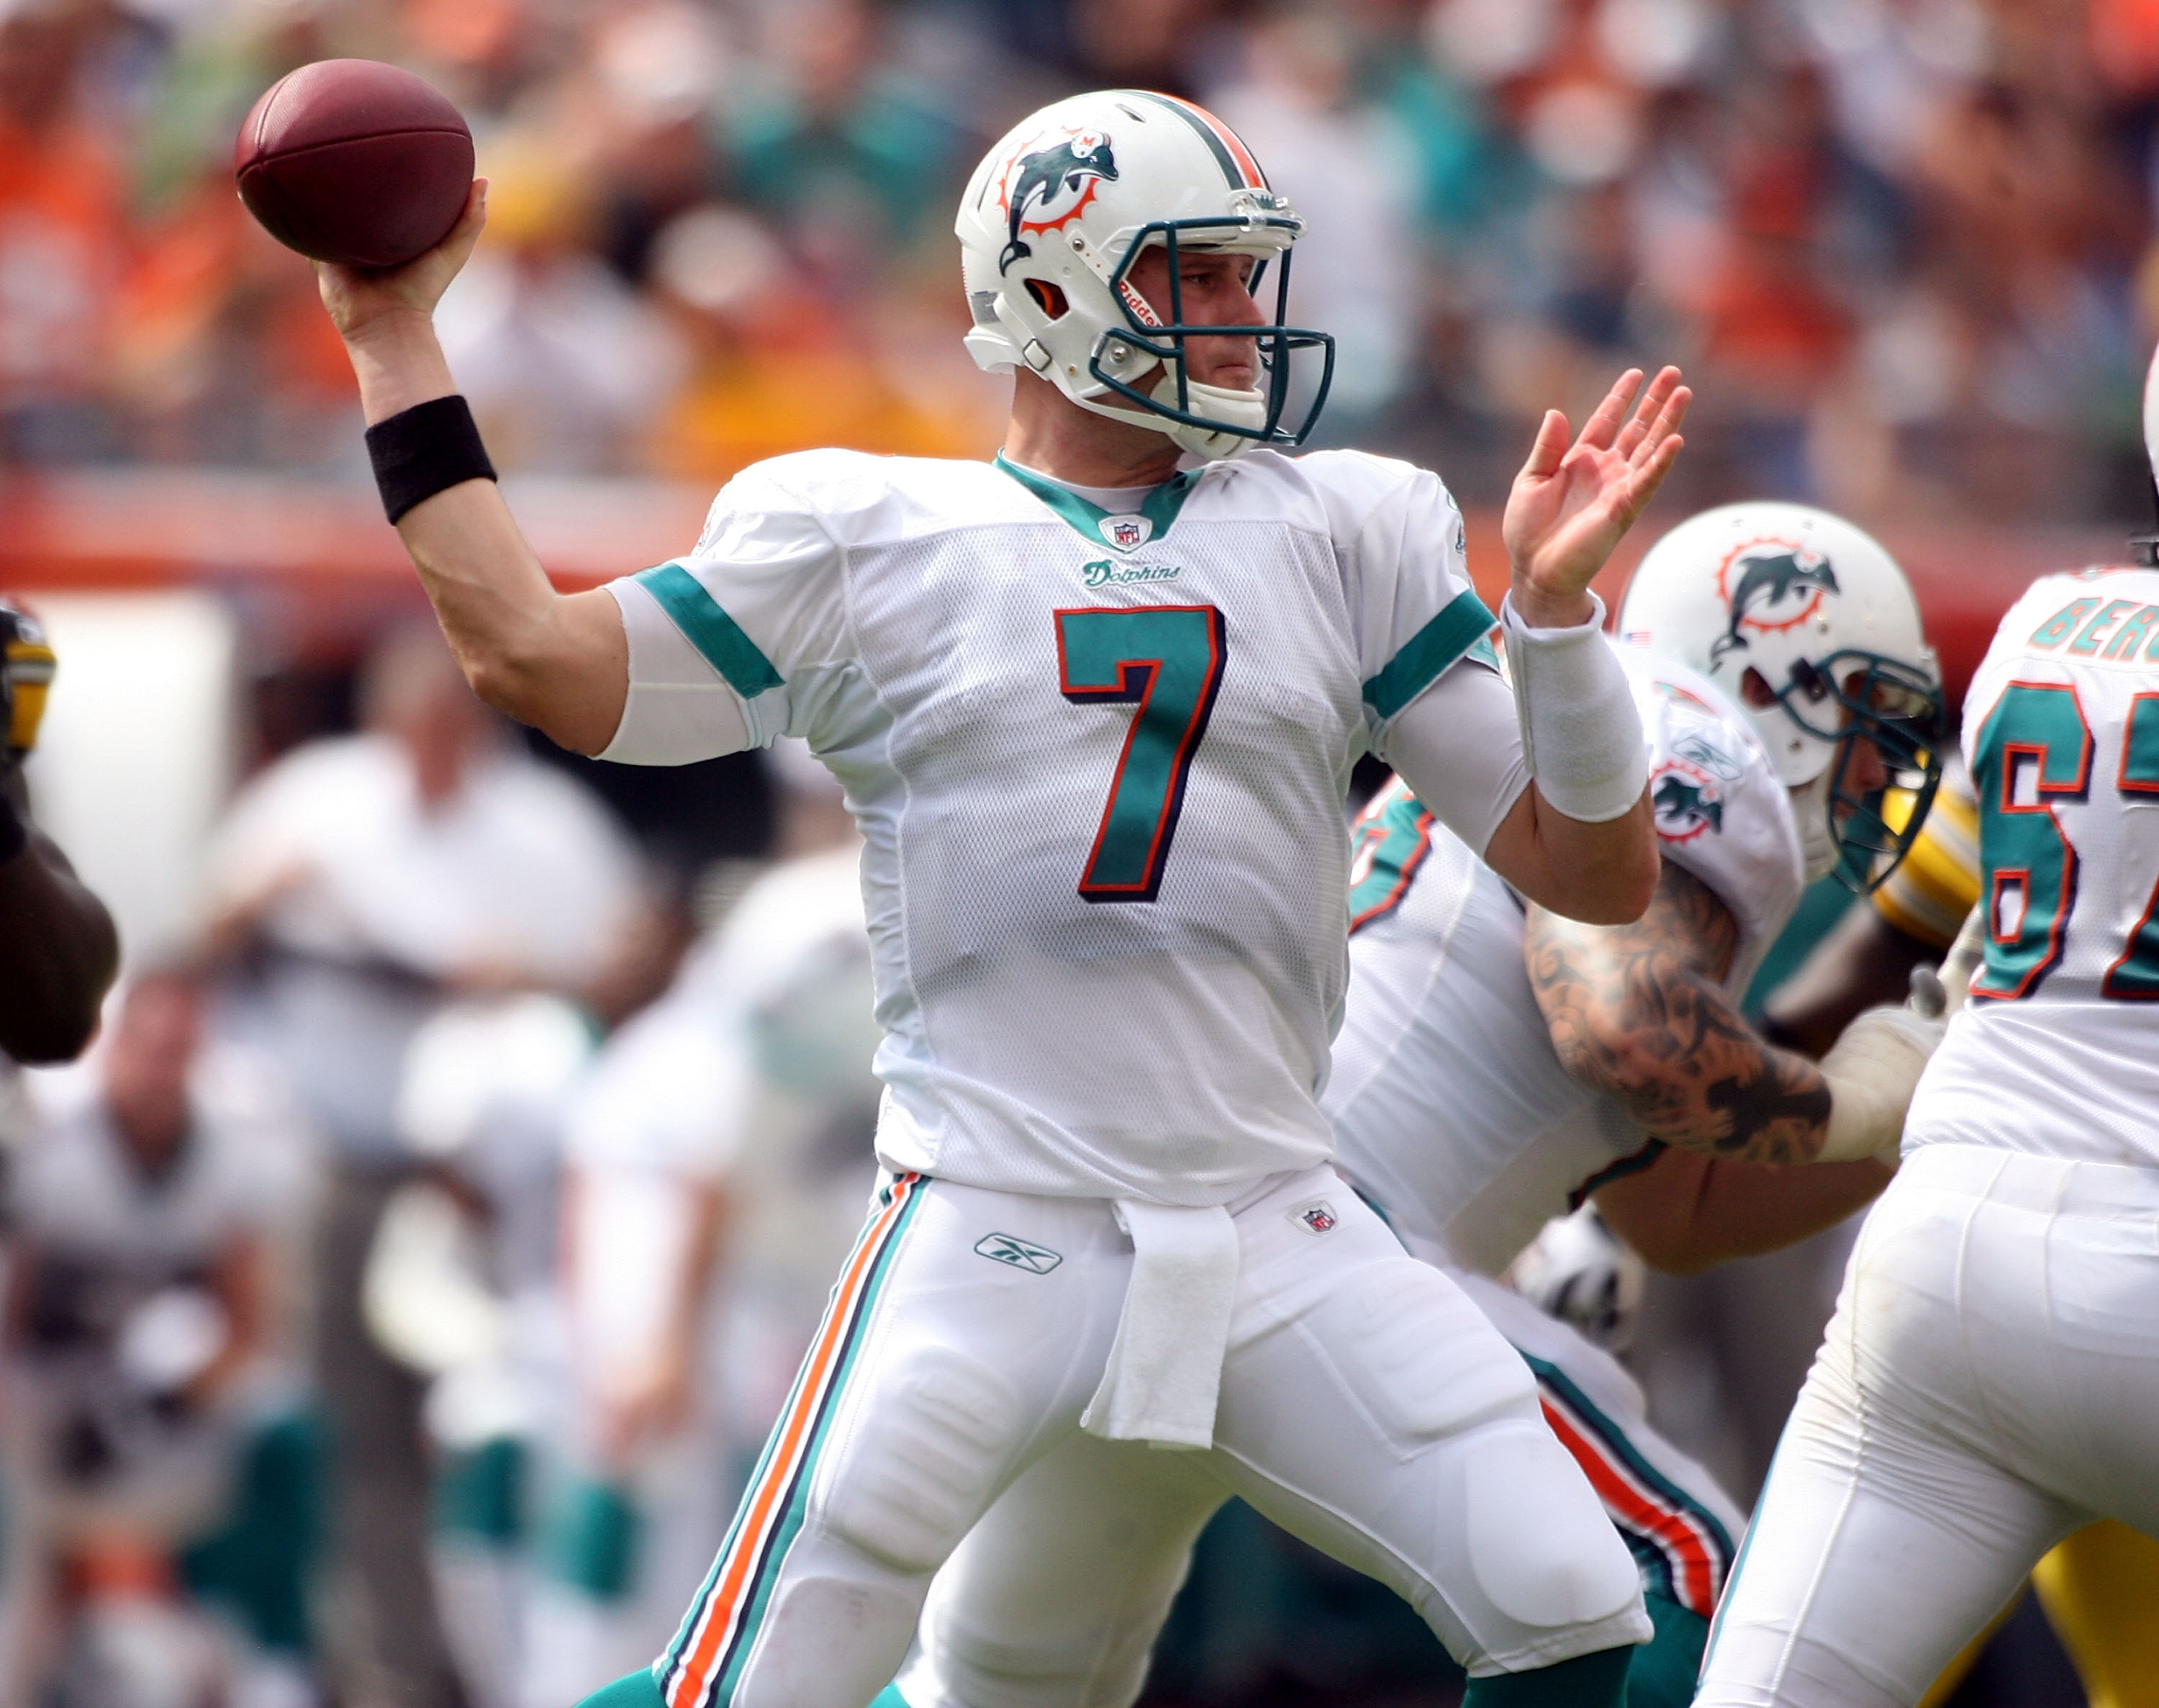 MIAMI - OCTOBER 24:  Quarterback Chad Henne #7 passes against the Pittsburgh Steelers  at Sun Life Stadium on October 24, 2010 in Miami, Florida.  (Photo by Marc Serota/Getty Images)